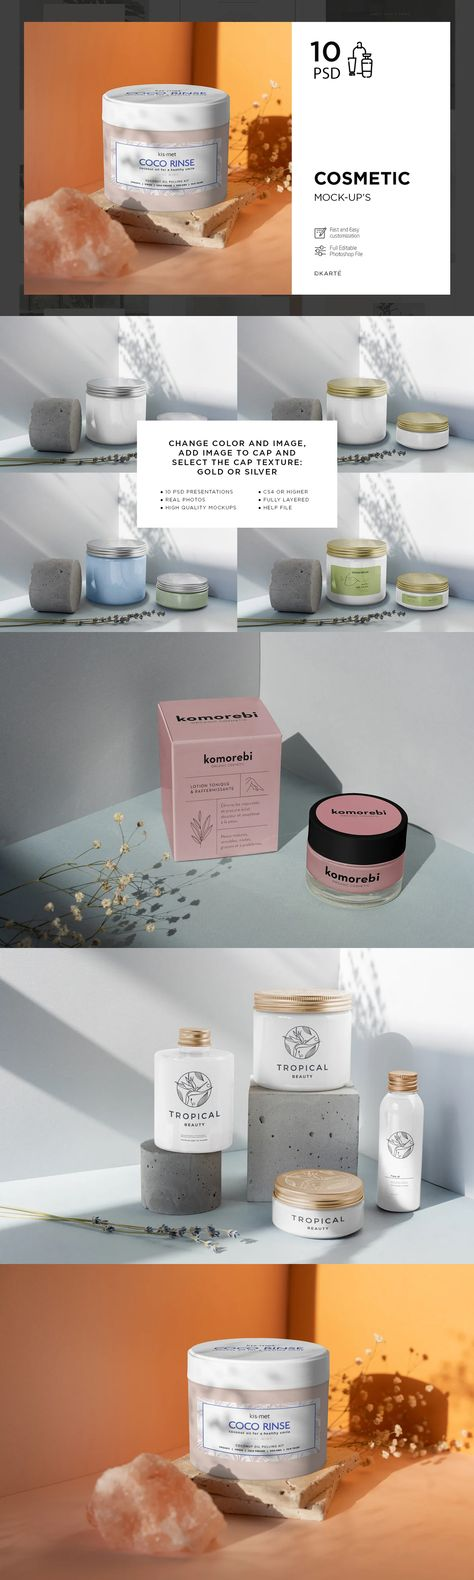 Cosmetic Mock-Up's 10 PSD